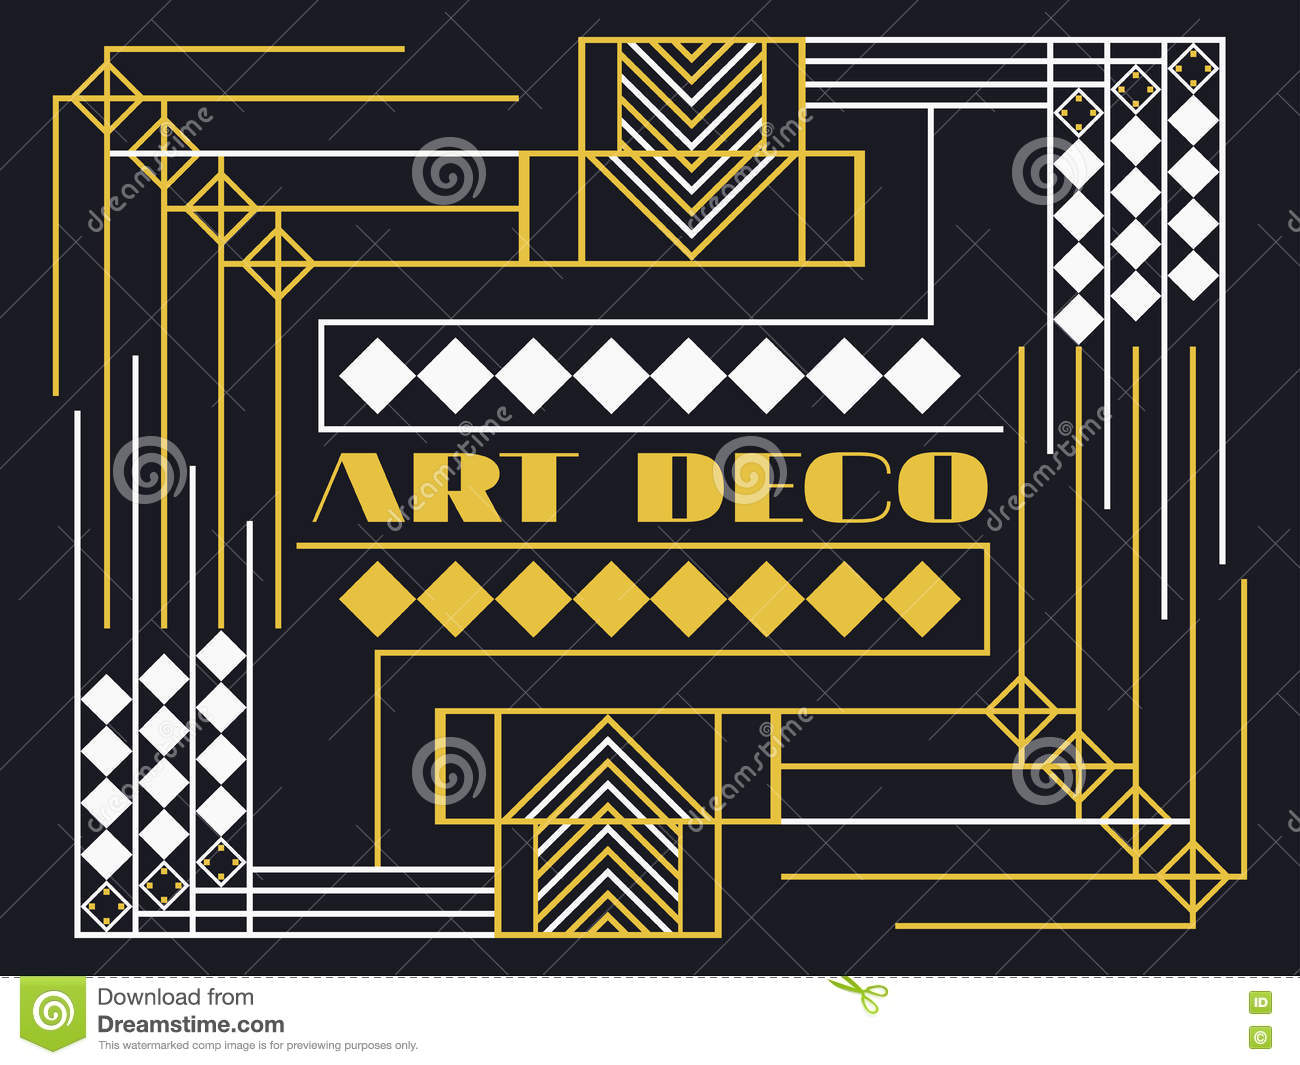 art deco frame art deco geometric vintage frame retro style background style 1920 39 s 1930 39 s. Black Bedroom Furniture Sets. Home Design Ideas